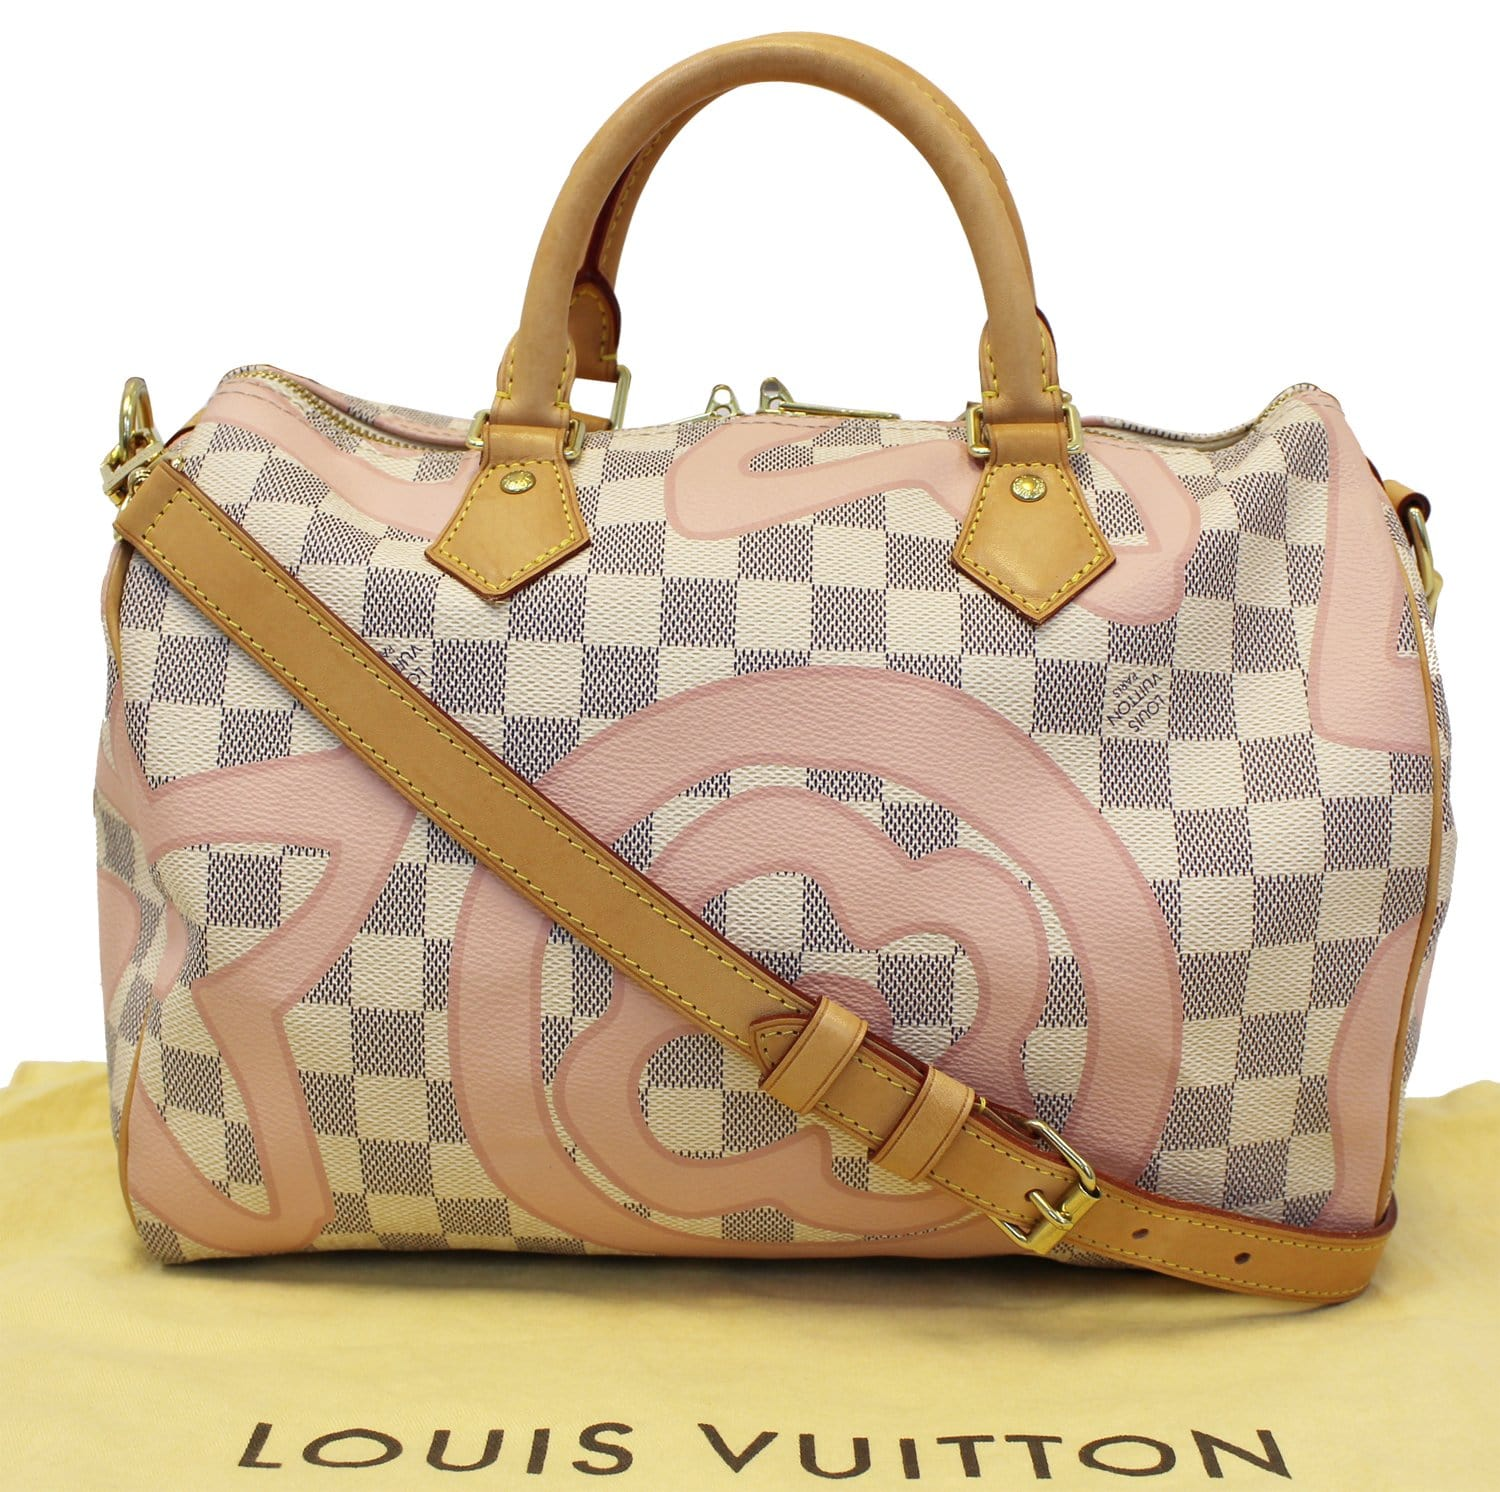 a48805dc4a9a LOUIS VUITTON Damier Azur Tahitienne Speedy 30 Bandouliere Limited Edition